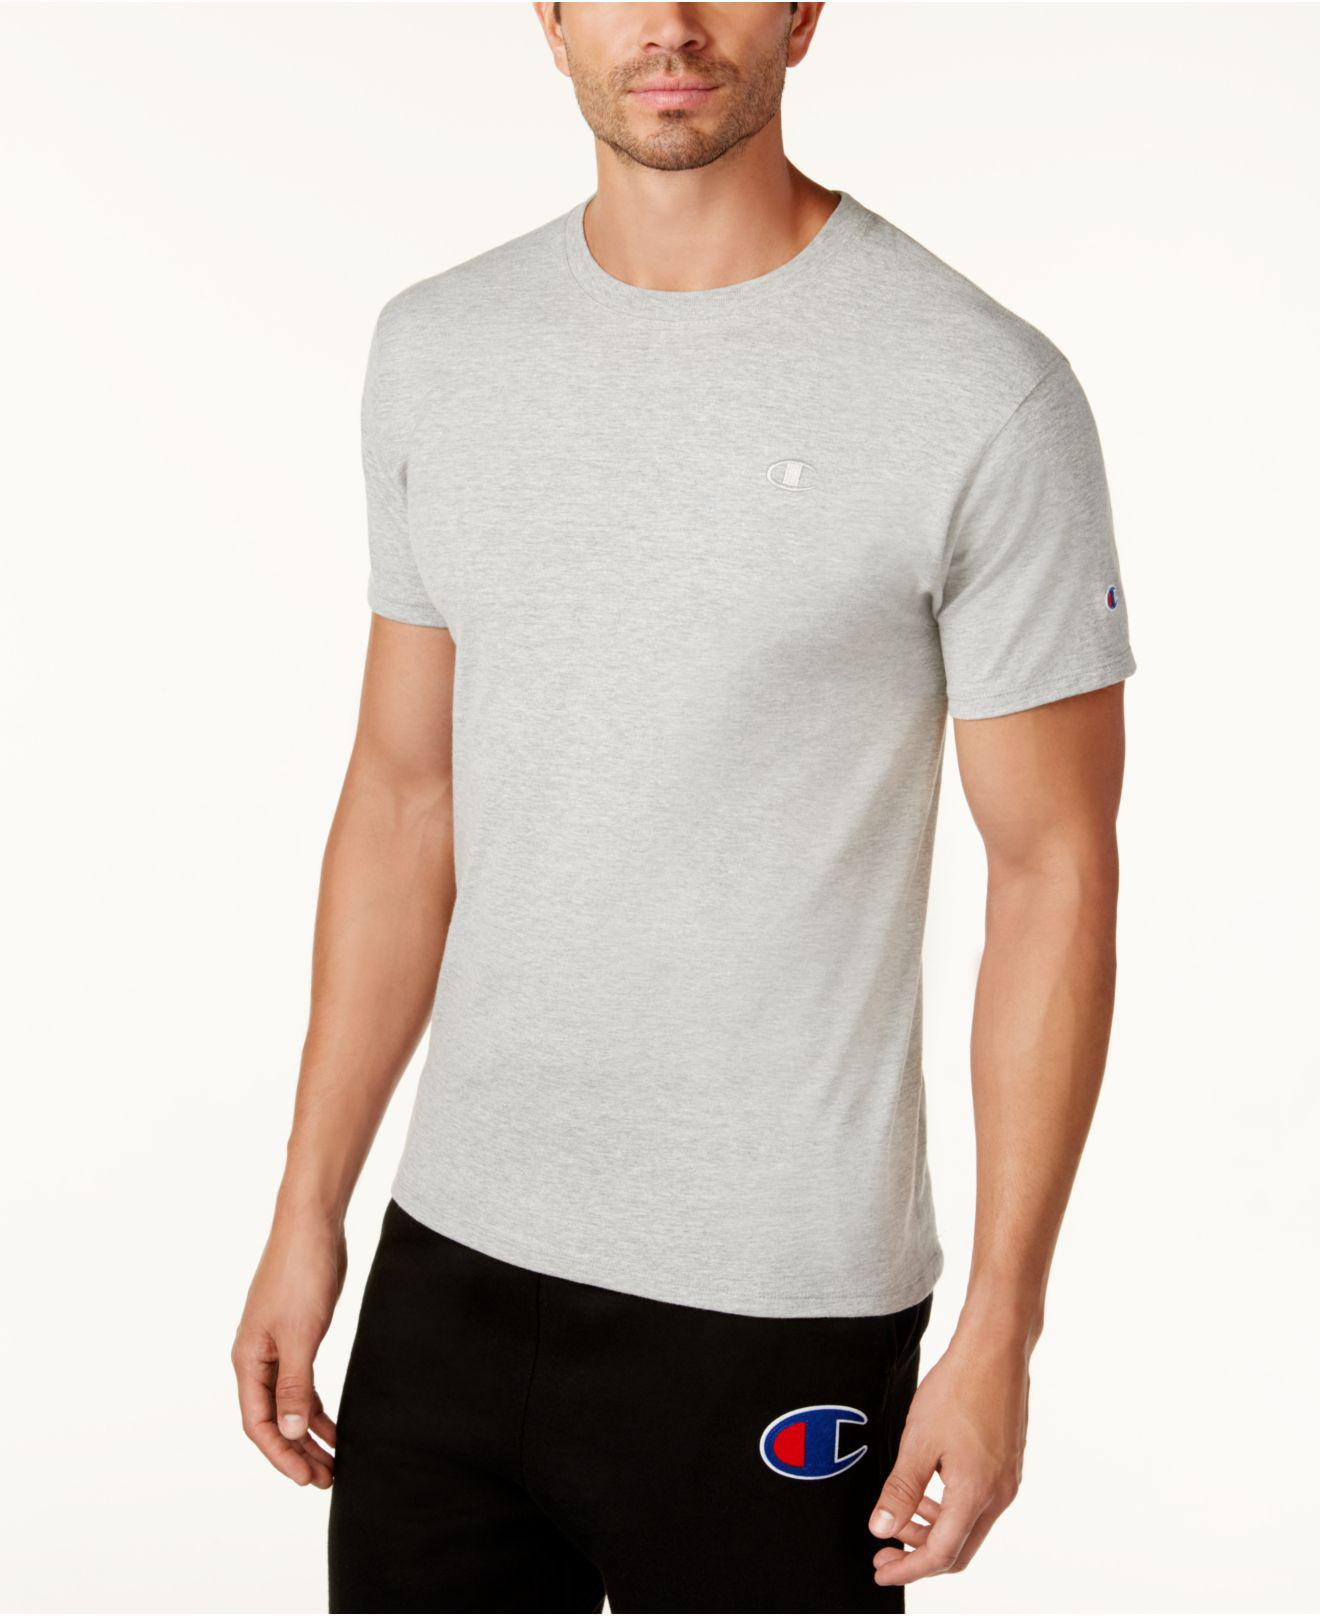 a54c4ffef2ae Lyst - Champion Men's Cotton Jersey T-shirt in Gray for Men